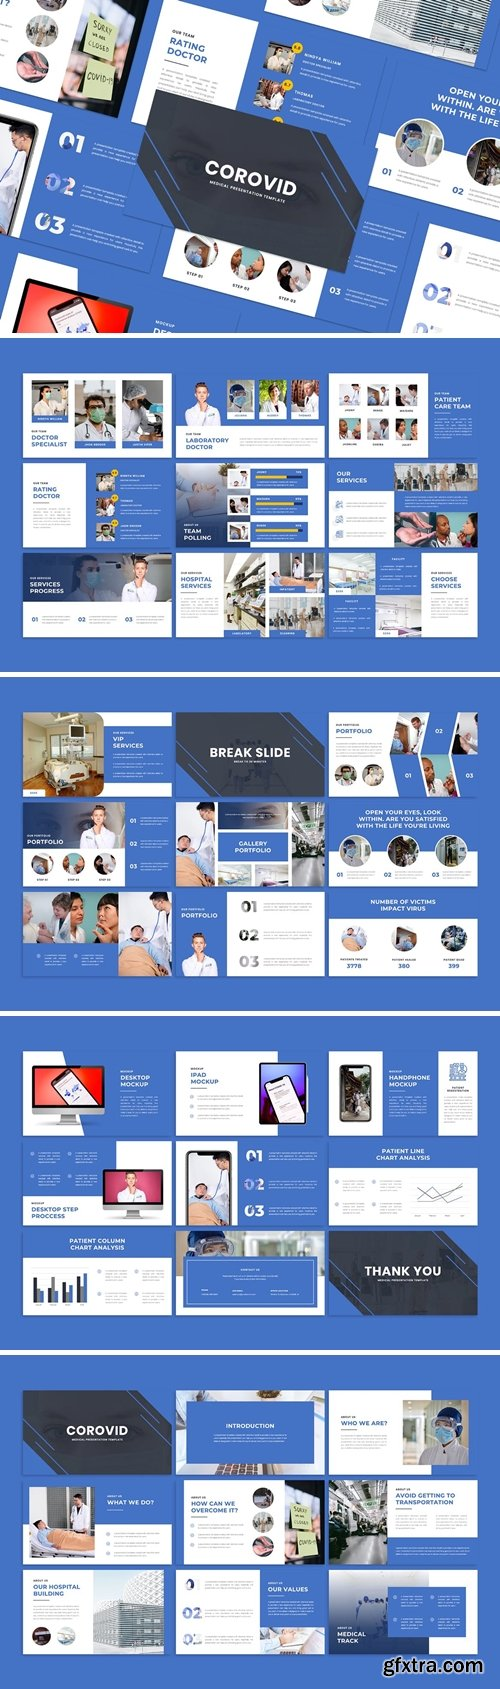 Corovid - Powerpoint Template